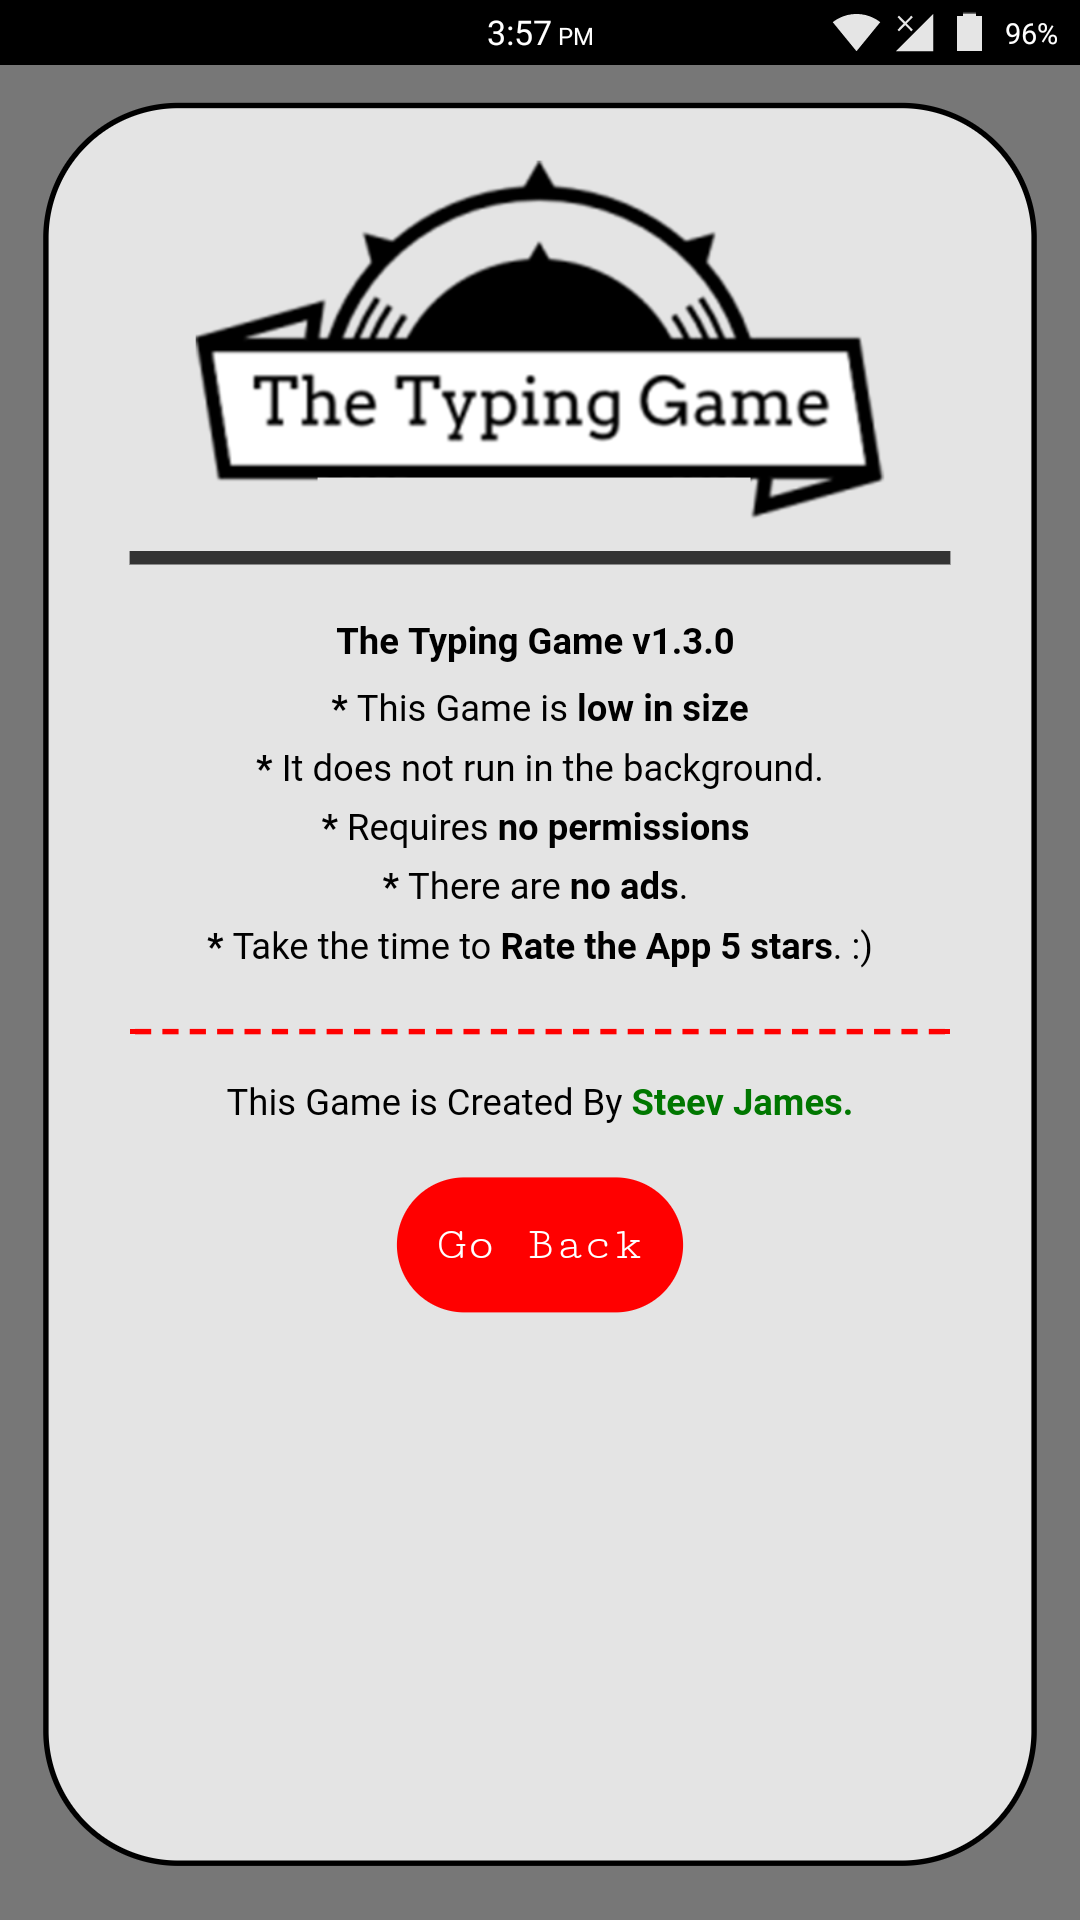 The Typing Game